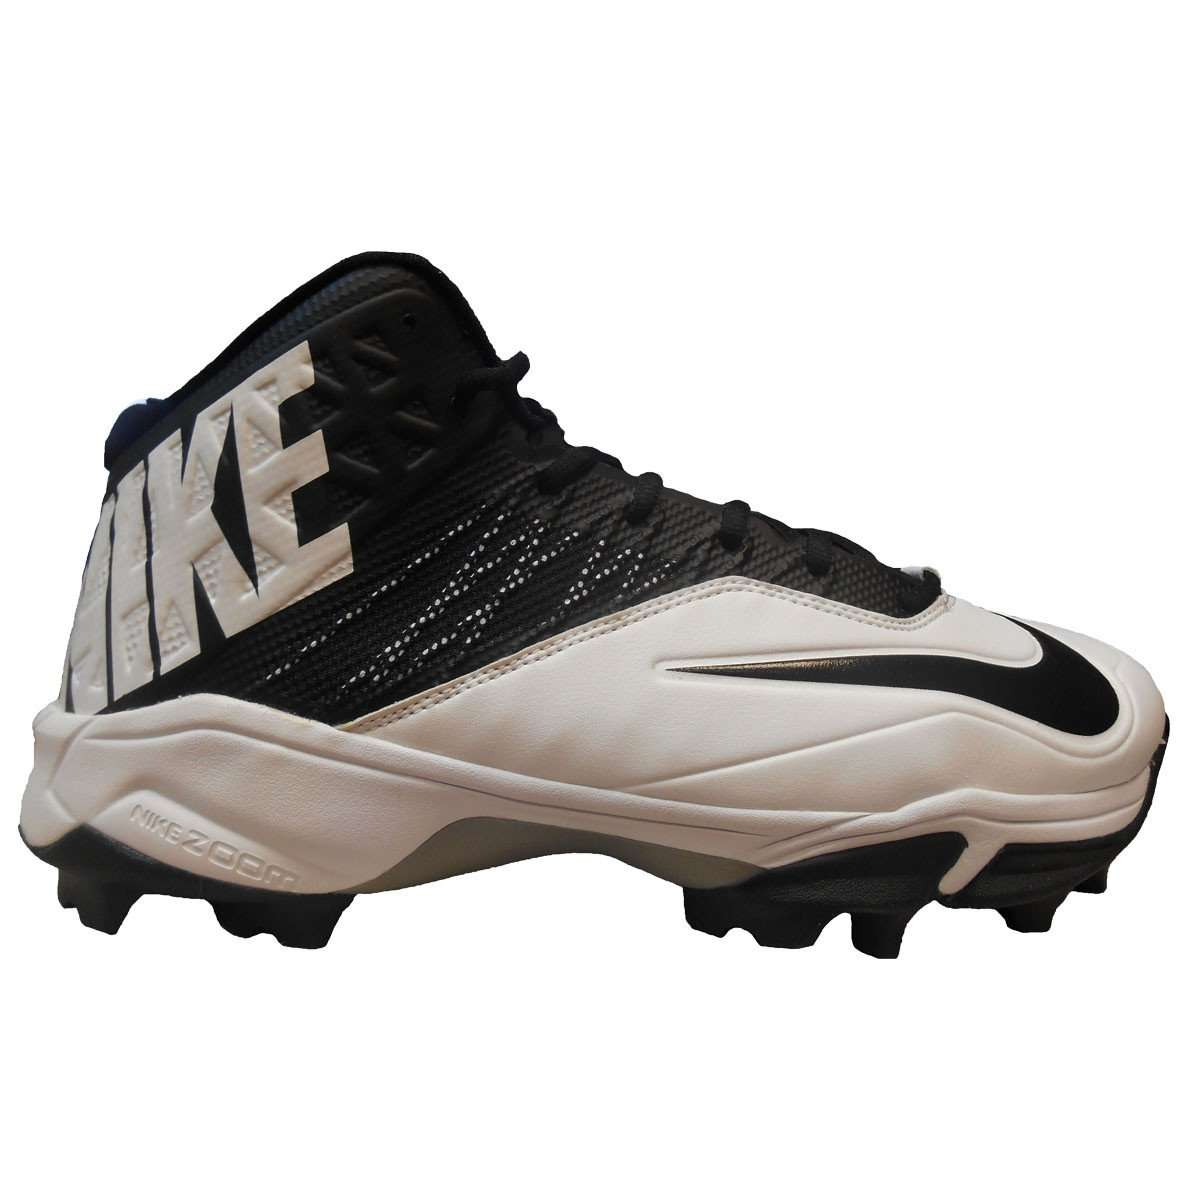 new concept 4ad00 dd151 Nike Zoom Code Elite Pro Shark Wide Football Cleats - 12.5   White Black